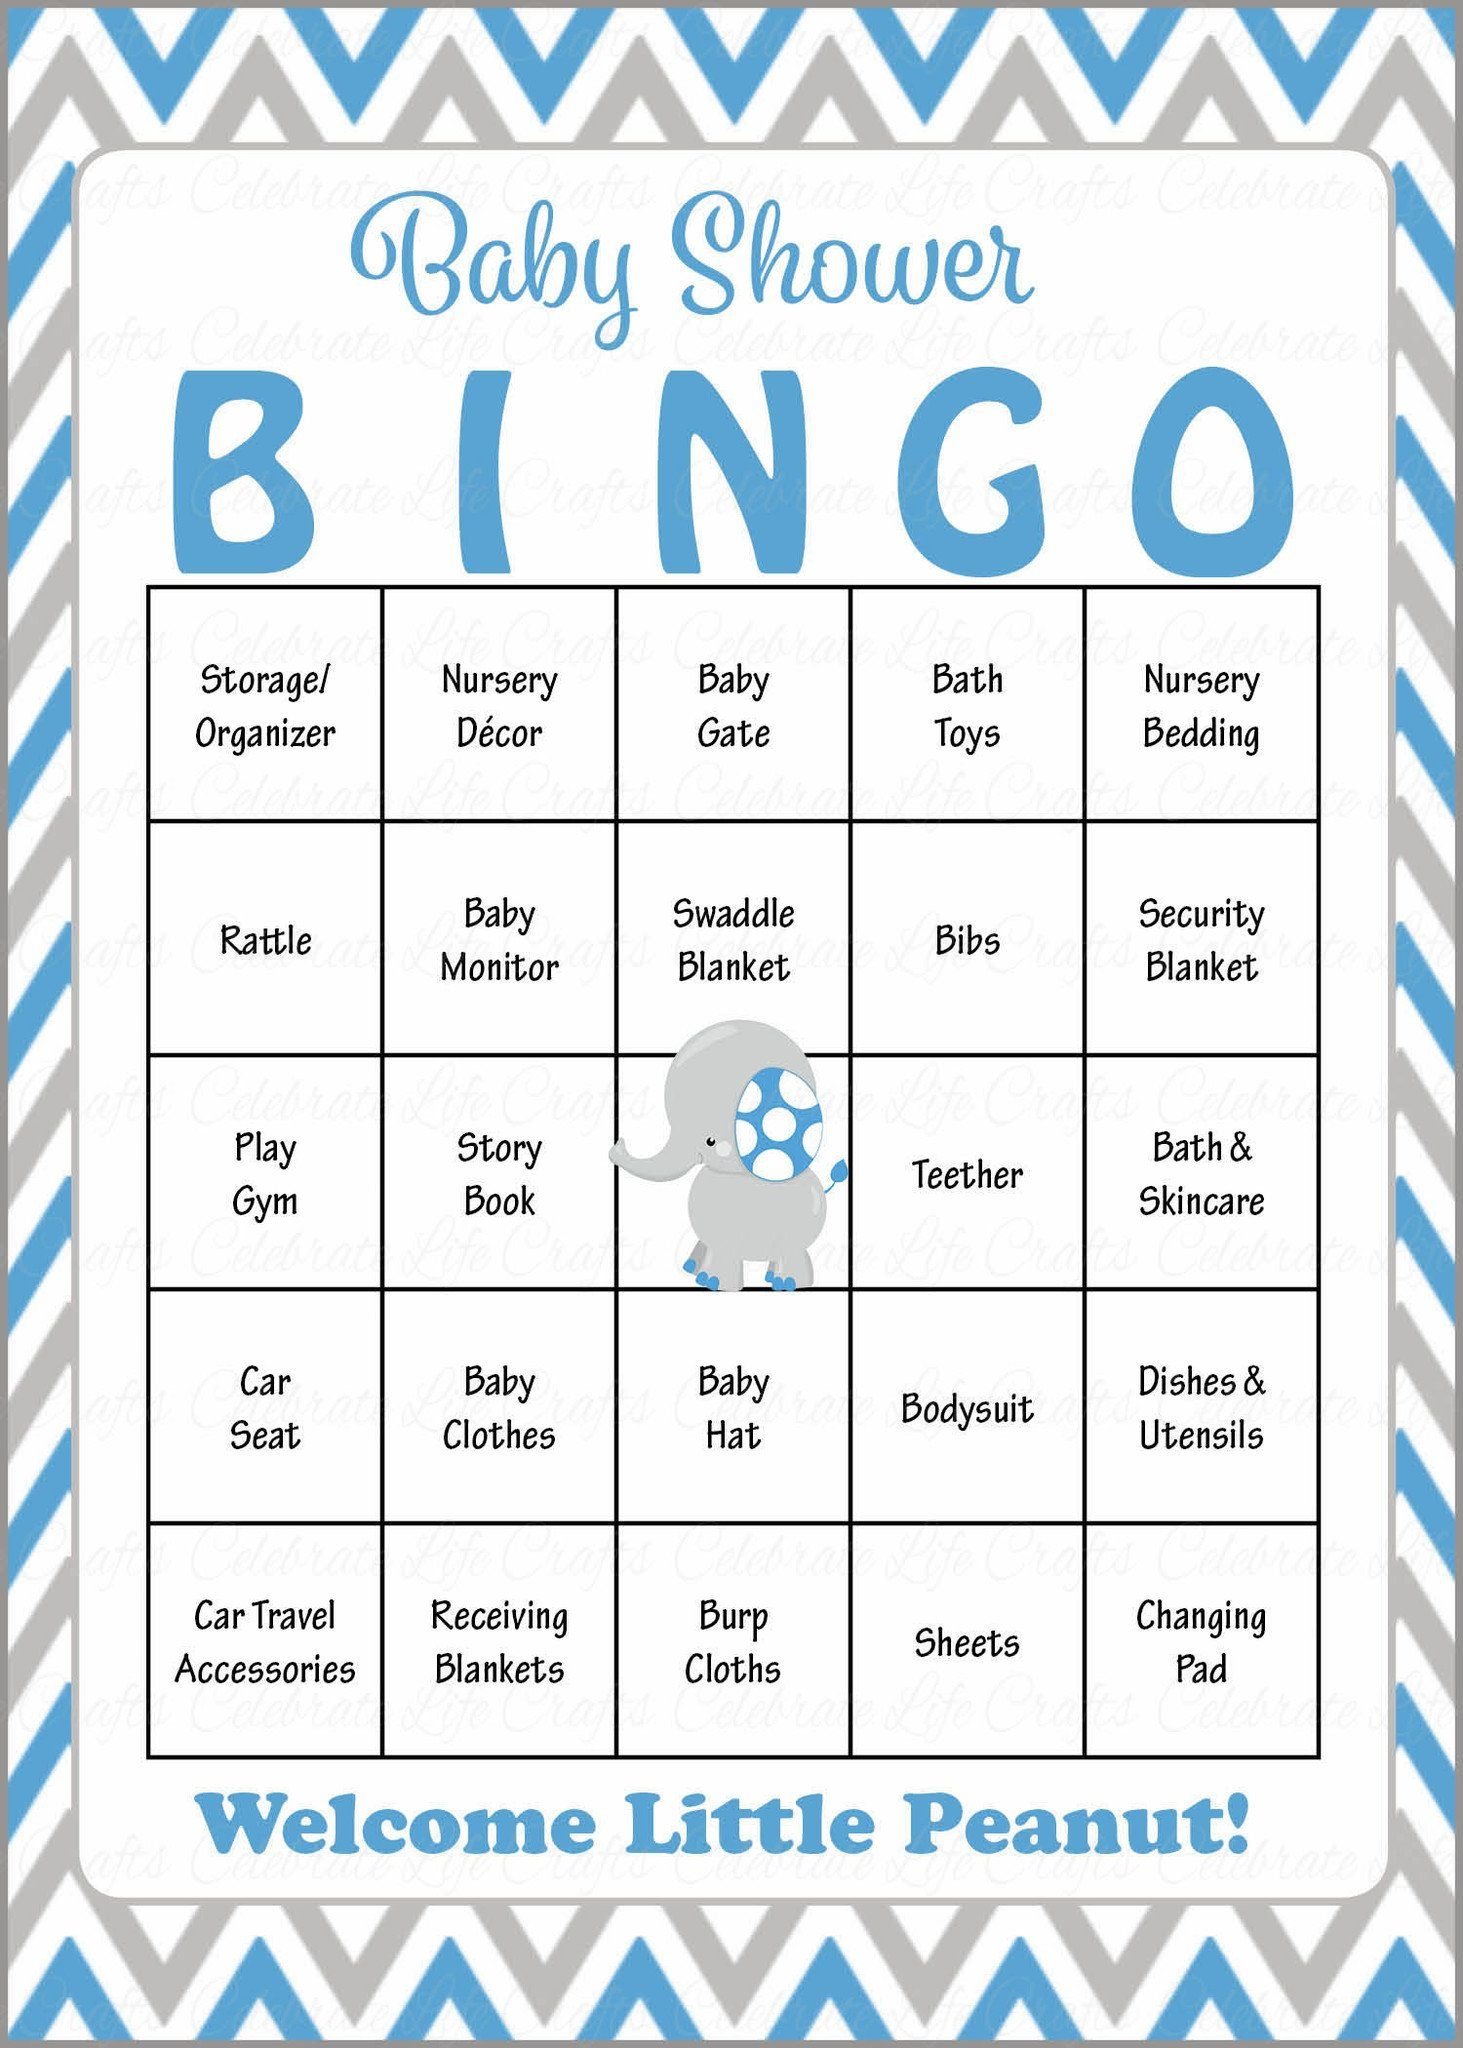 Elephant Baby Bingo Cards Printable Download Prefilled Baby Shower Game For Boy Blue G Baby Shower Bingo Gray Elephant Baby Shower Whales Baby Shower